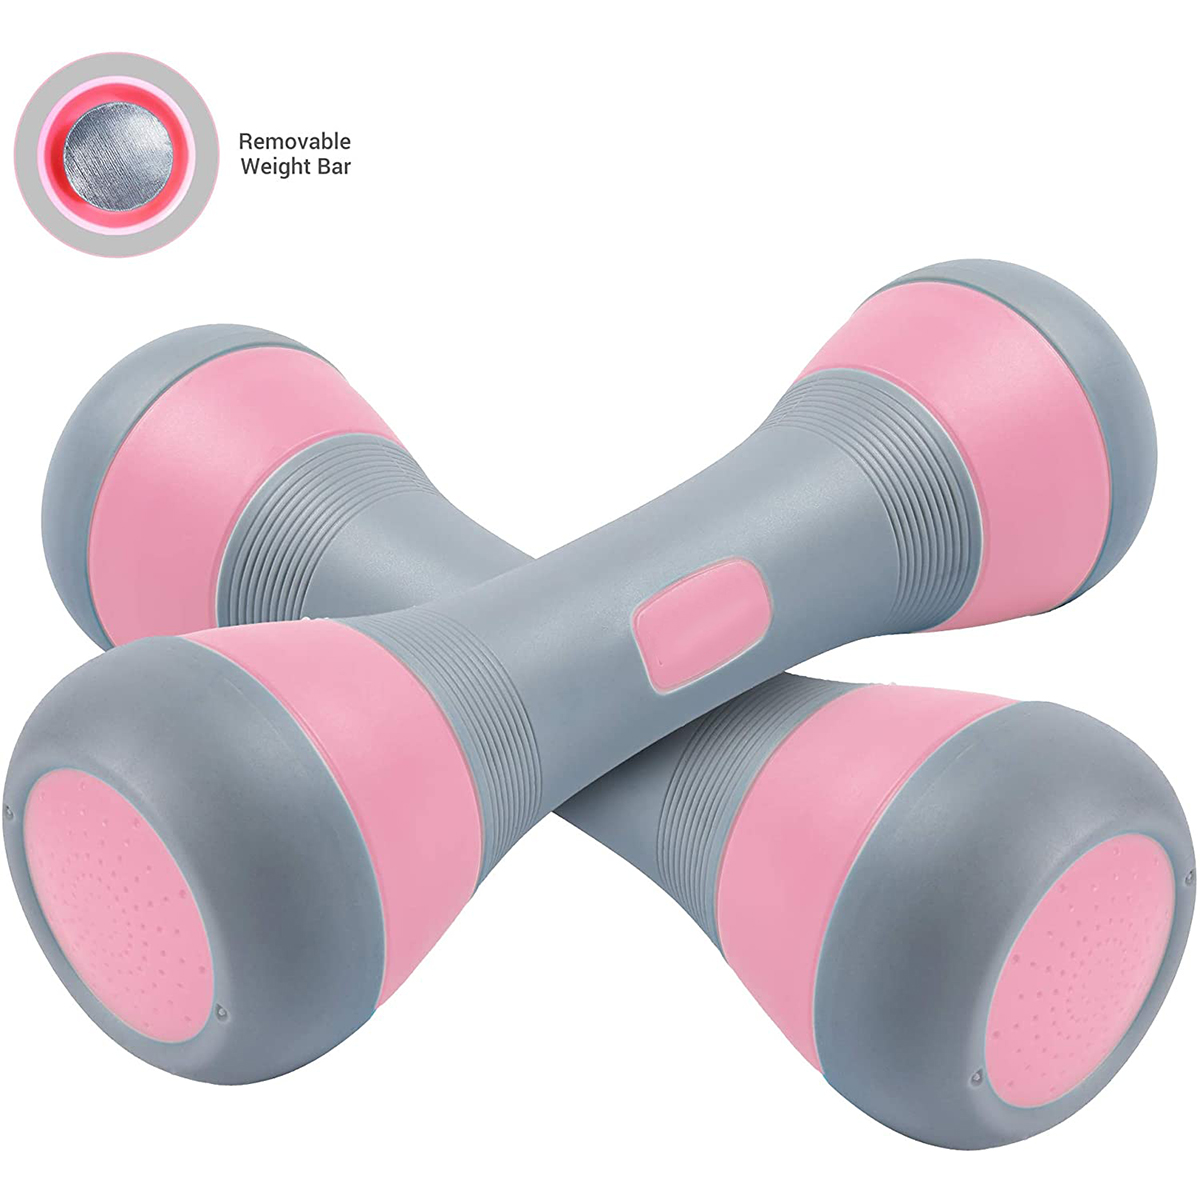 Details about  /4 pcs Kids Plastic Dumbbells Sports Exercise Toy Green /& Pink